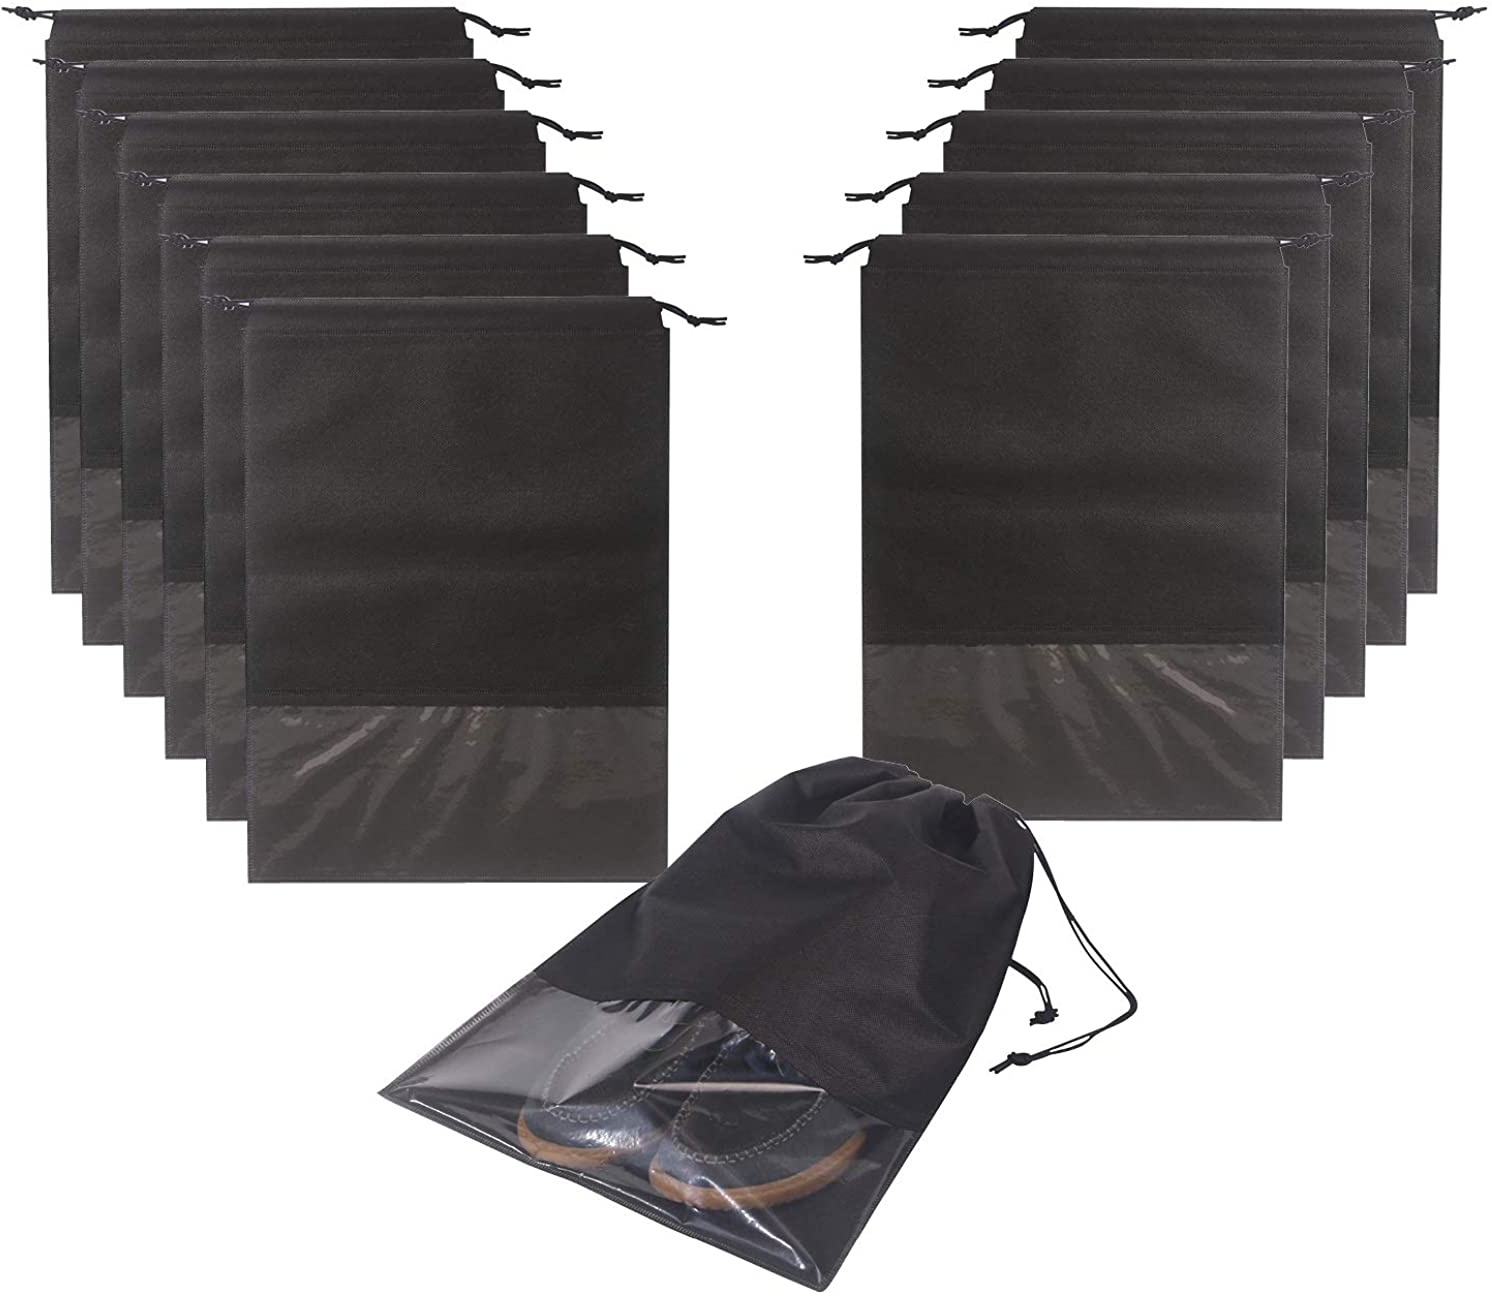 12PCS Travel Shoe Bags Non-Woven Storage with Rope for Men and Women Large  Shoes Pouch Packing Organizers, Black - J3 BUY